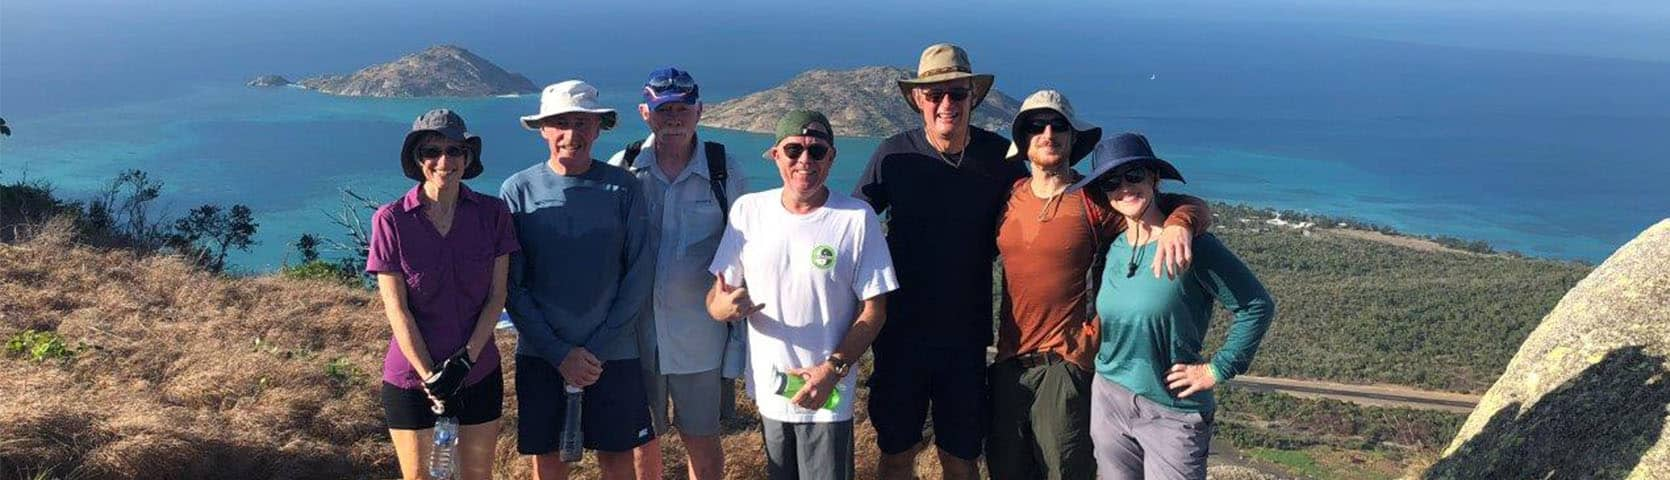 Great Barrier Reef Tour Group